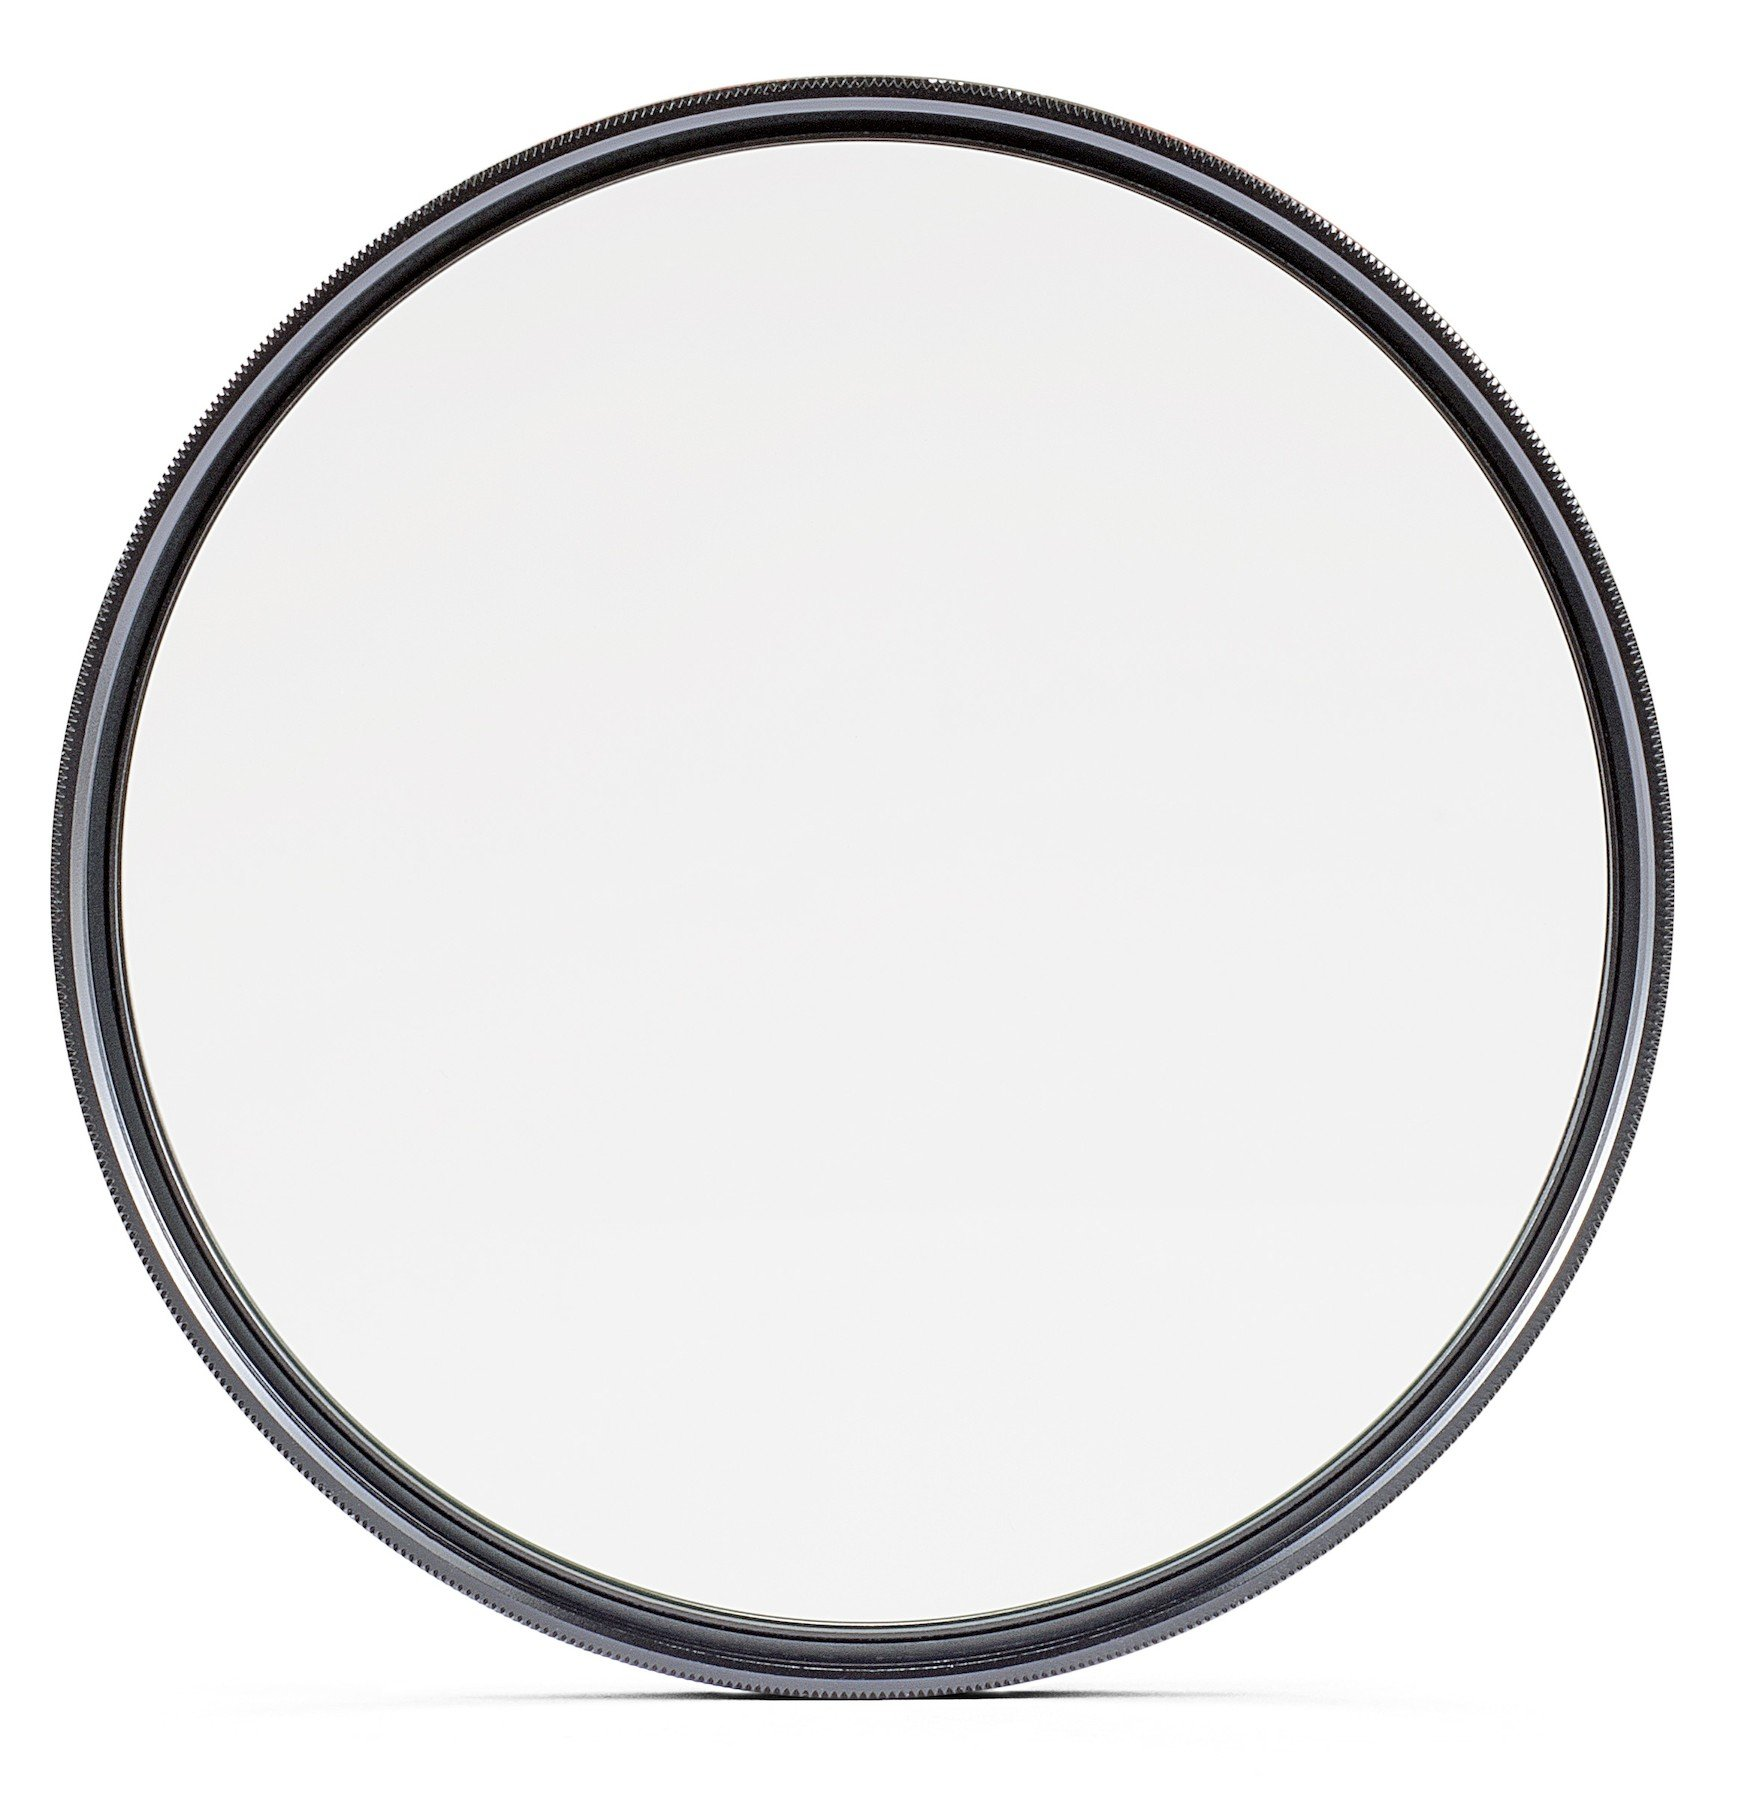 72mm Professional Protect Filter